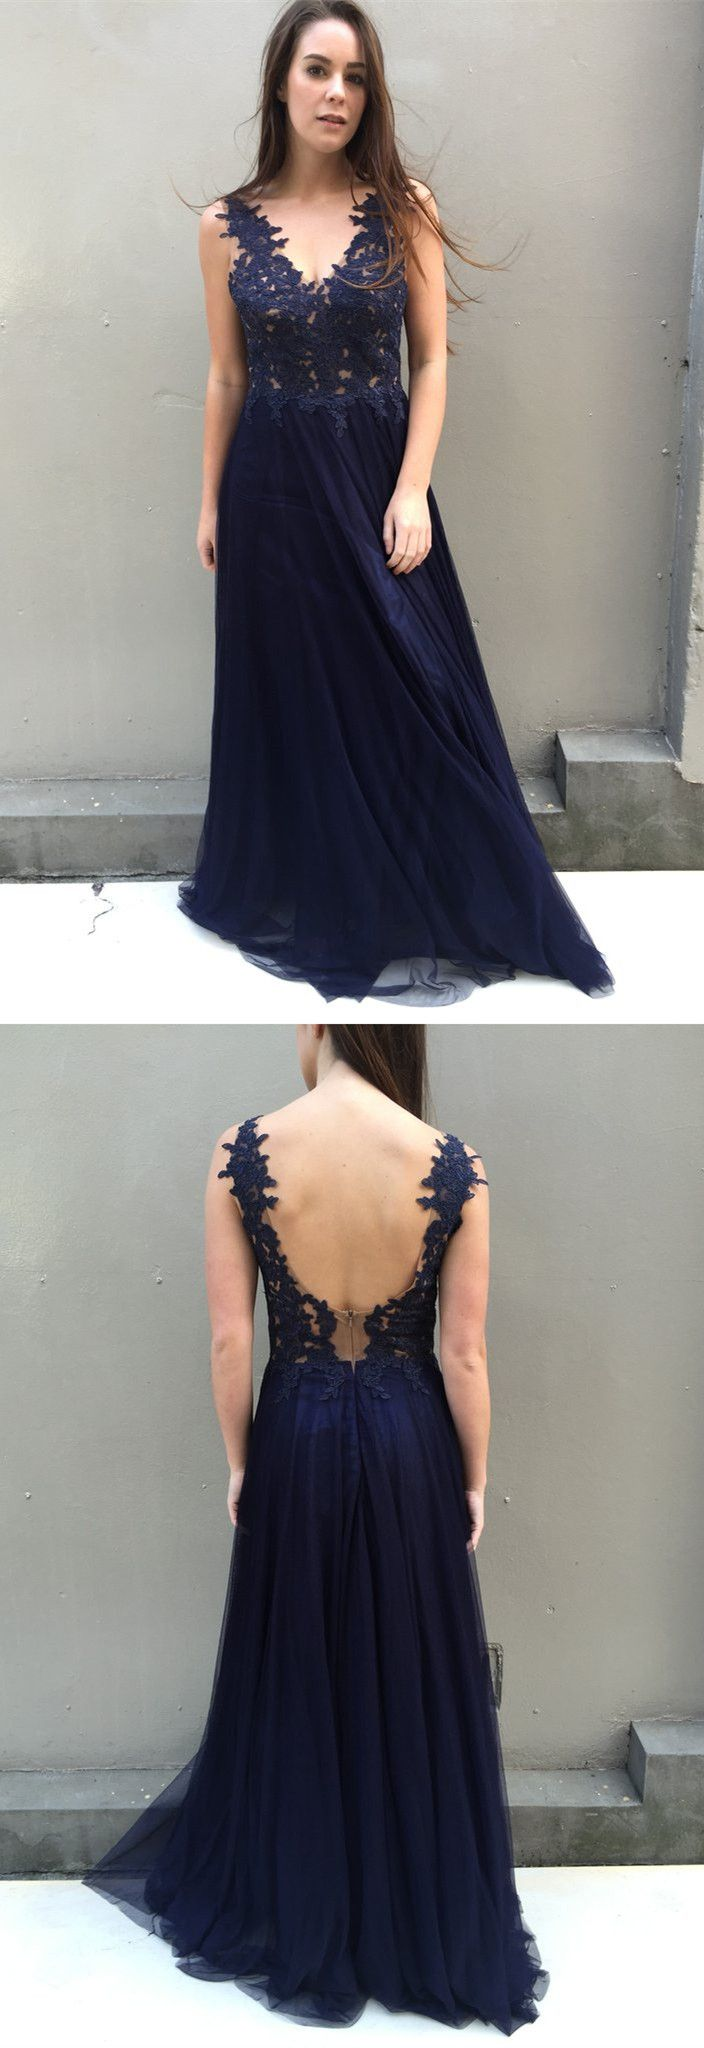 Navy blue long prom dress prom dress gorgeous prom dress